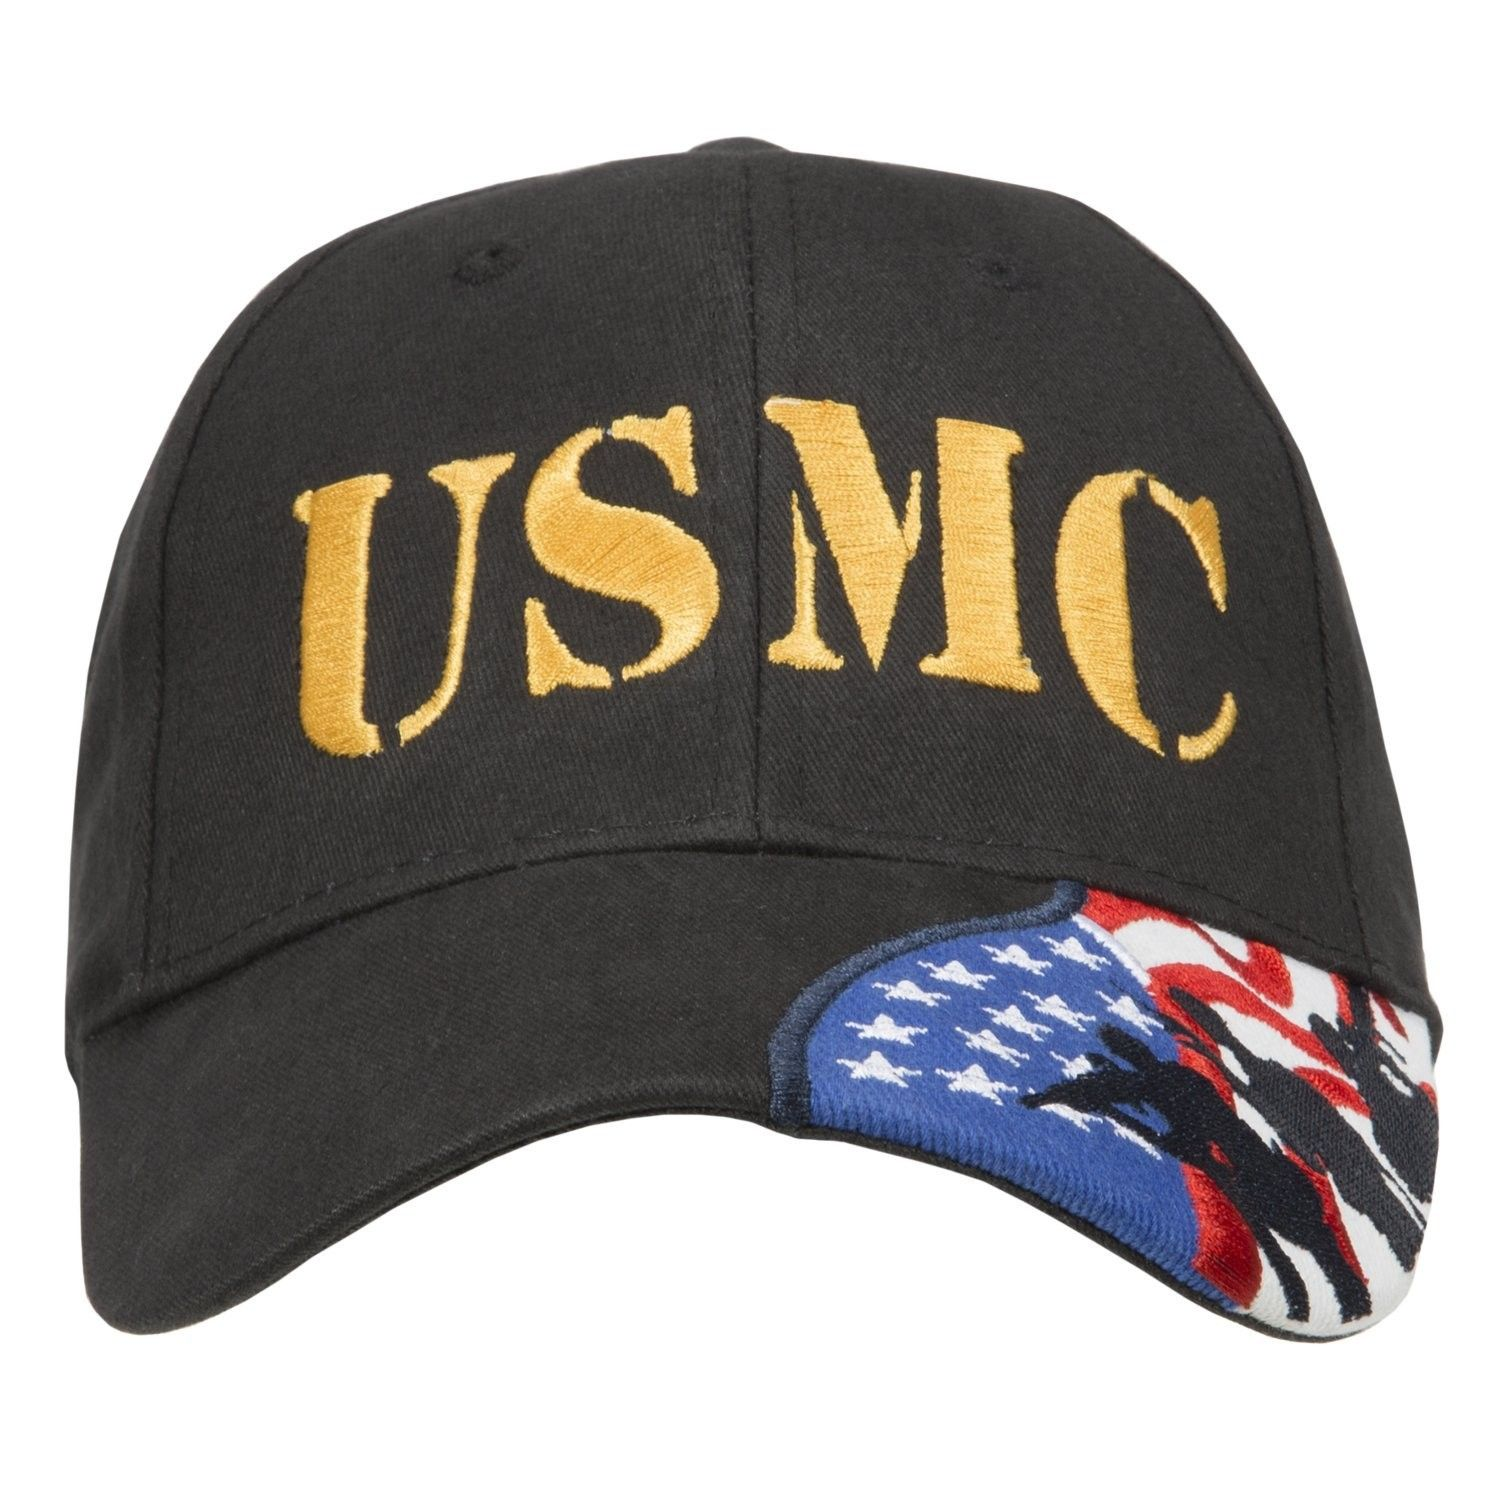 d3a0d205f7e29 US Marines Corps embroidered cap Few Proud Military USA Insignia Adjustable  Baseball Caps Hat - Usmc Black - CE187DY84CA - Hats   Caps